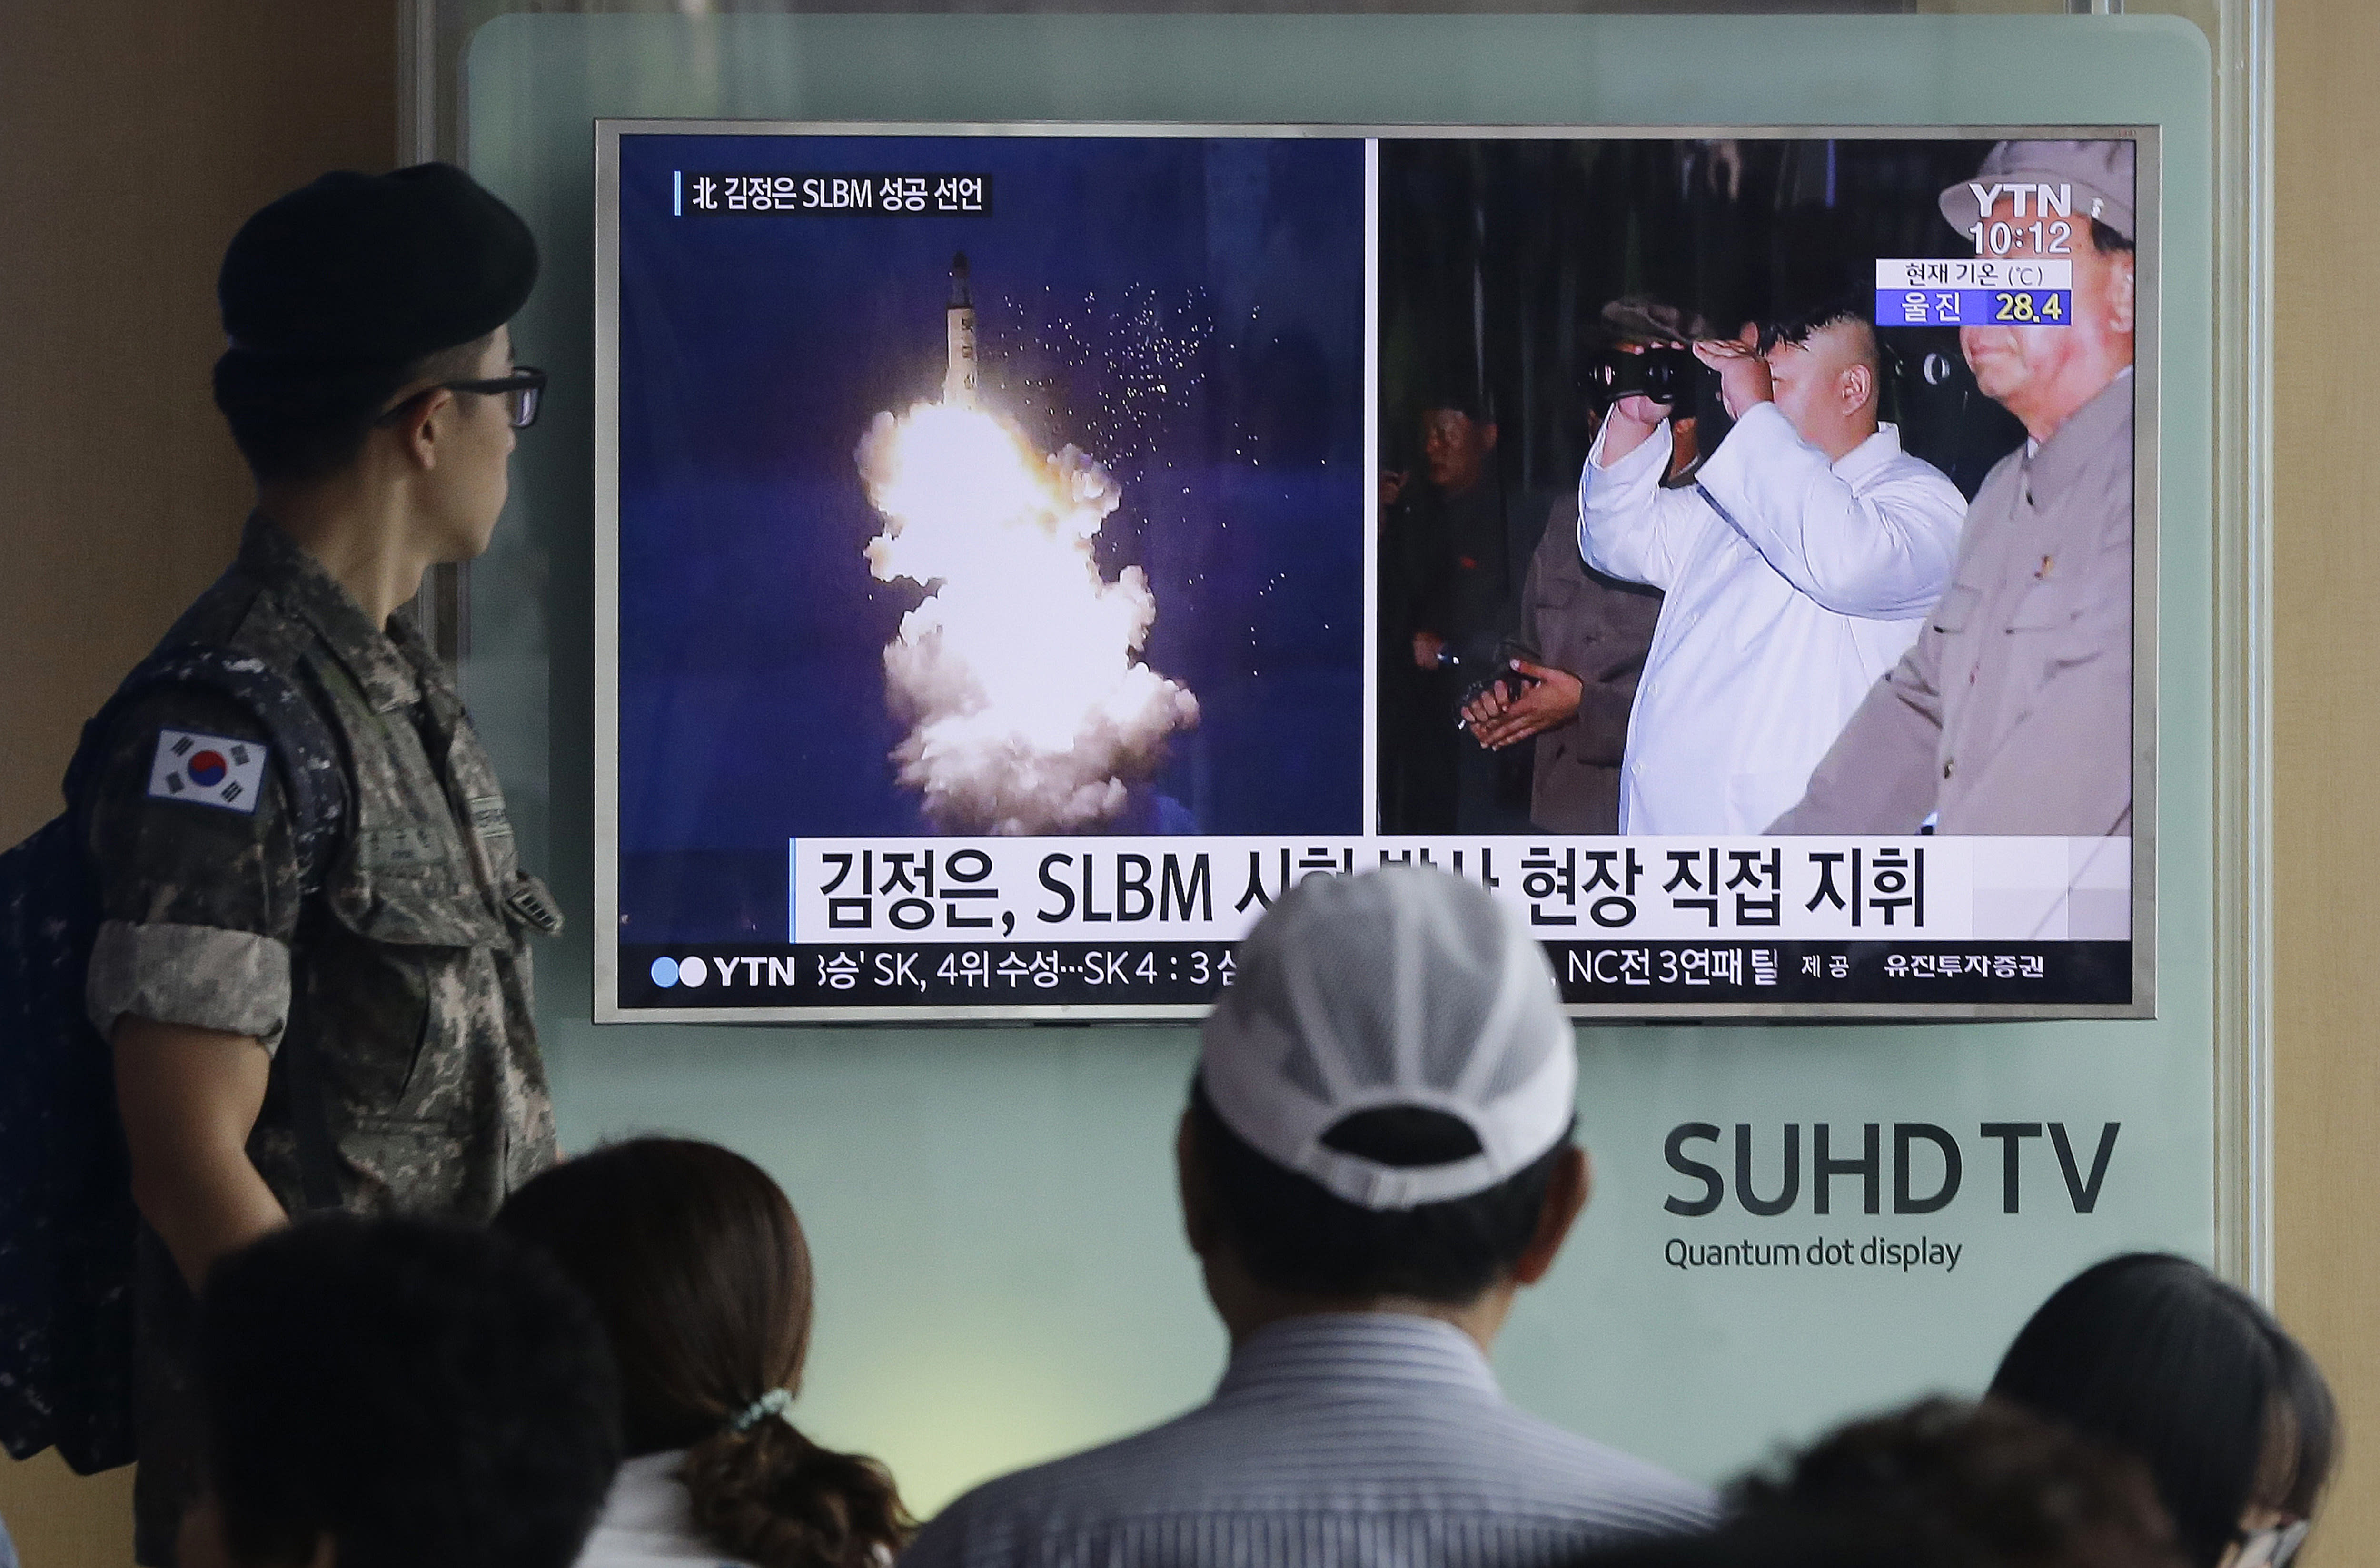 Pentagon: If North Korea doesn't behave, THAAD deployment to South Korea is only the first step